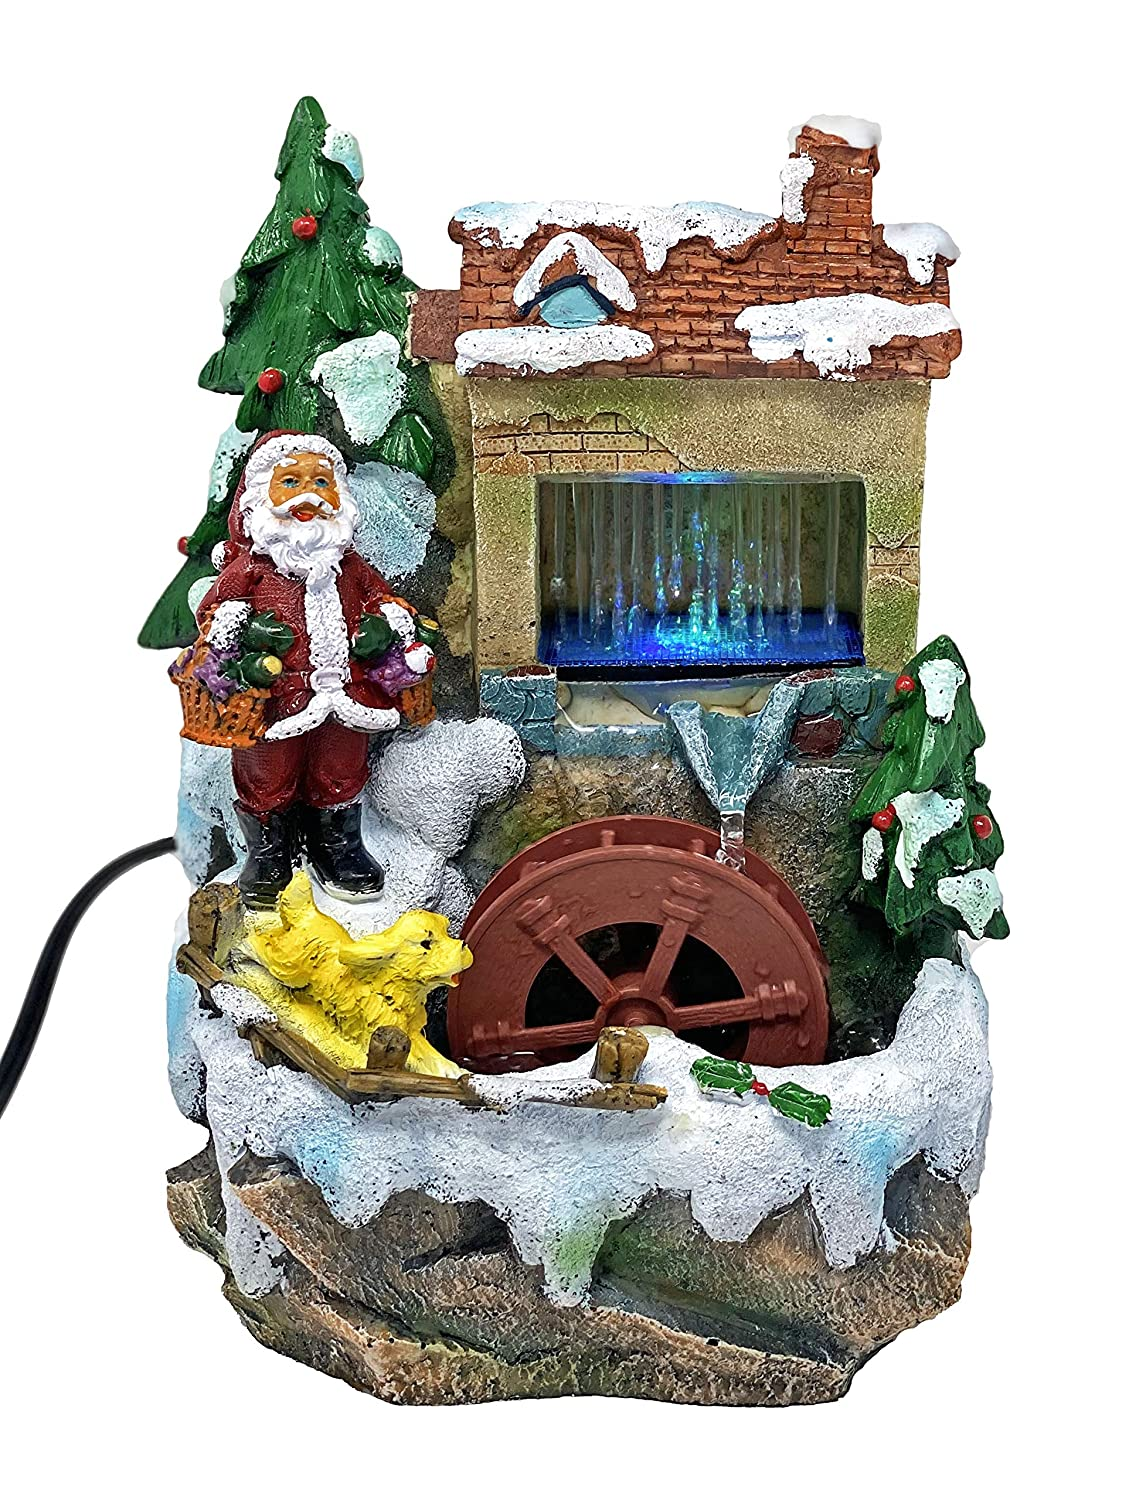 ImagiWonder Tabletop Fountain Santa with Gifts Near House